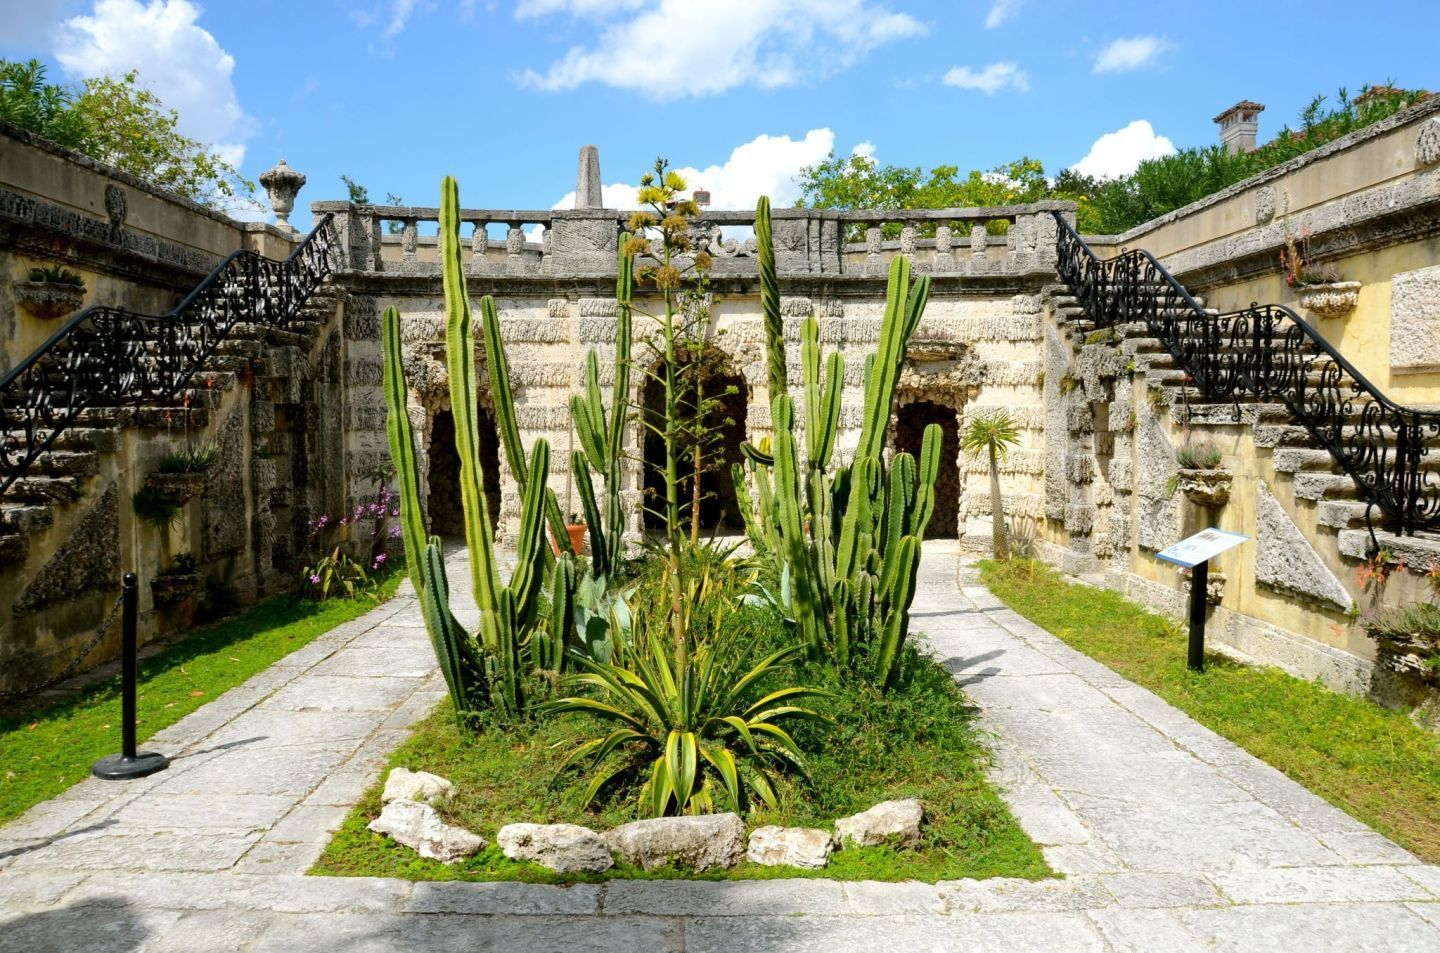 30d1e3794b31c8f9f8b860d17598ffcf - Vizcaya Museum And Gardens Architectural Styles